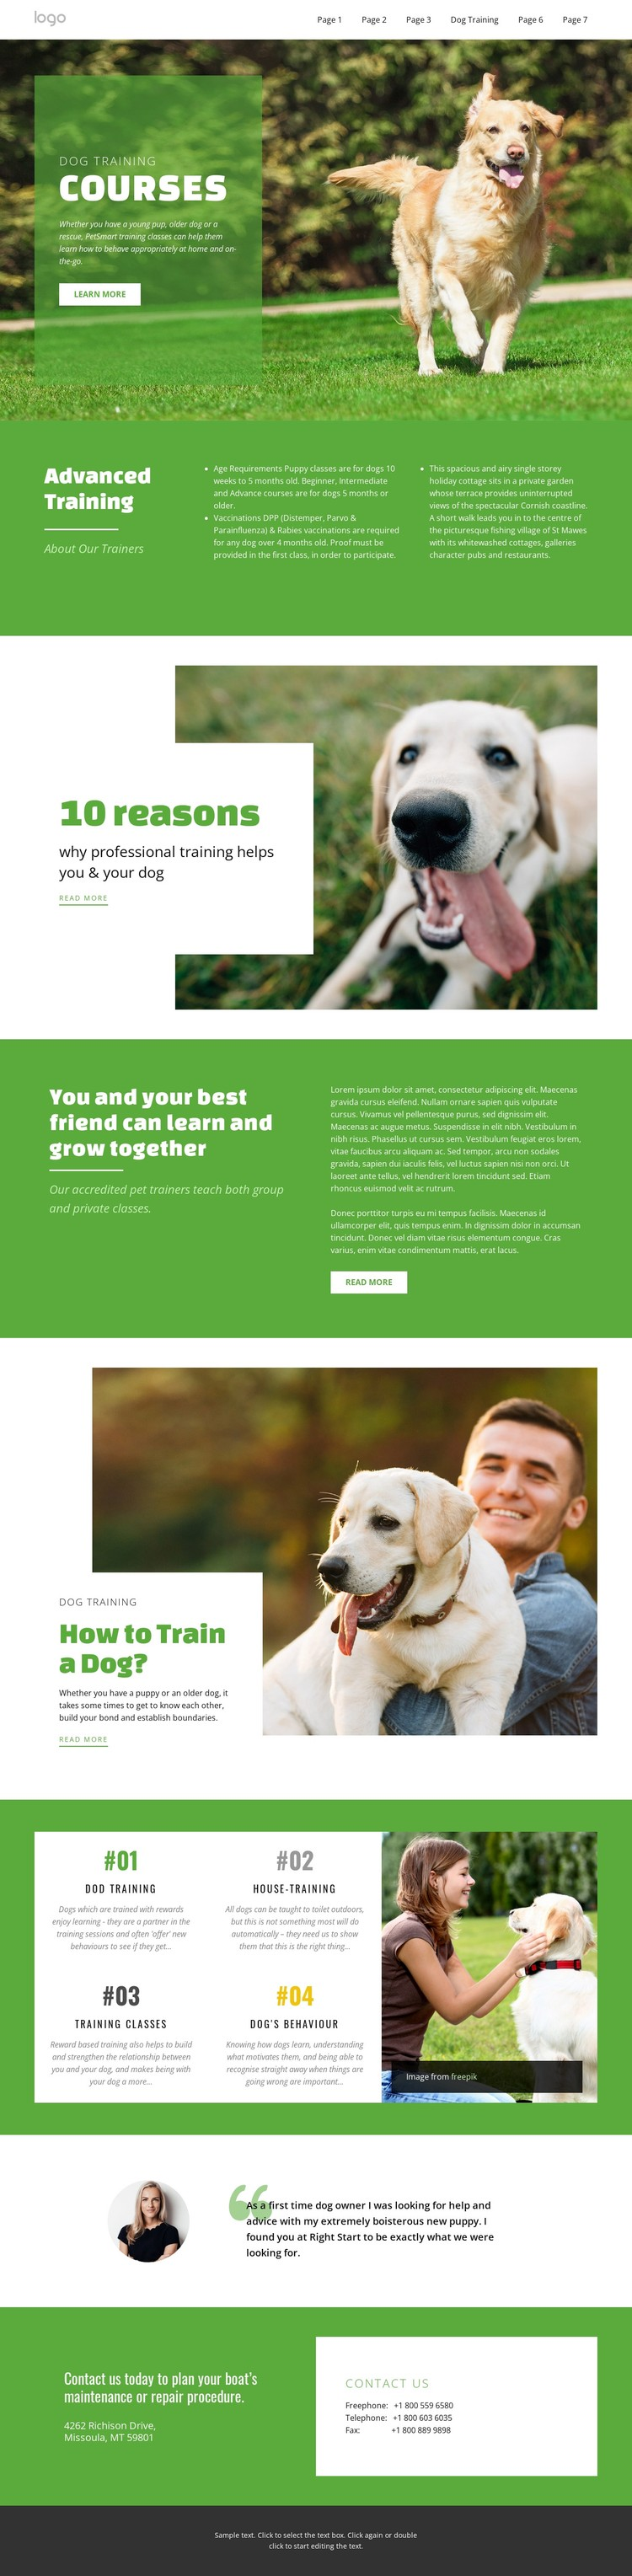 Training courses for pets WordPress Template